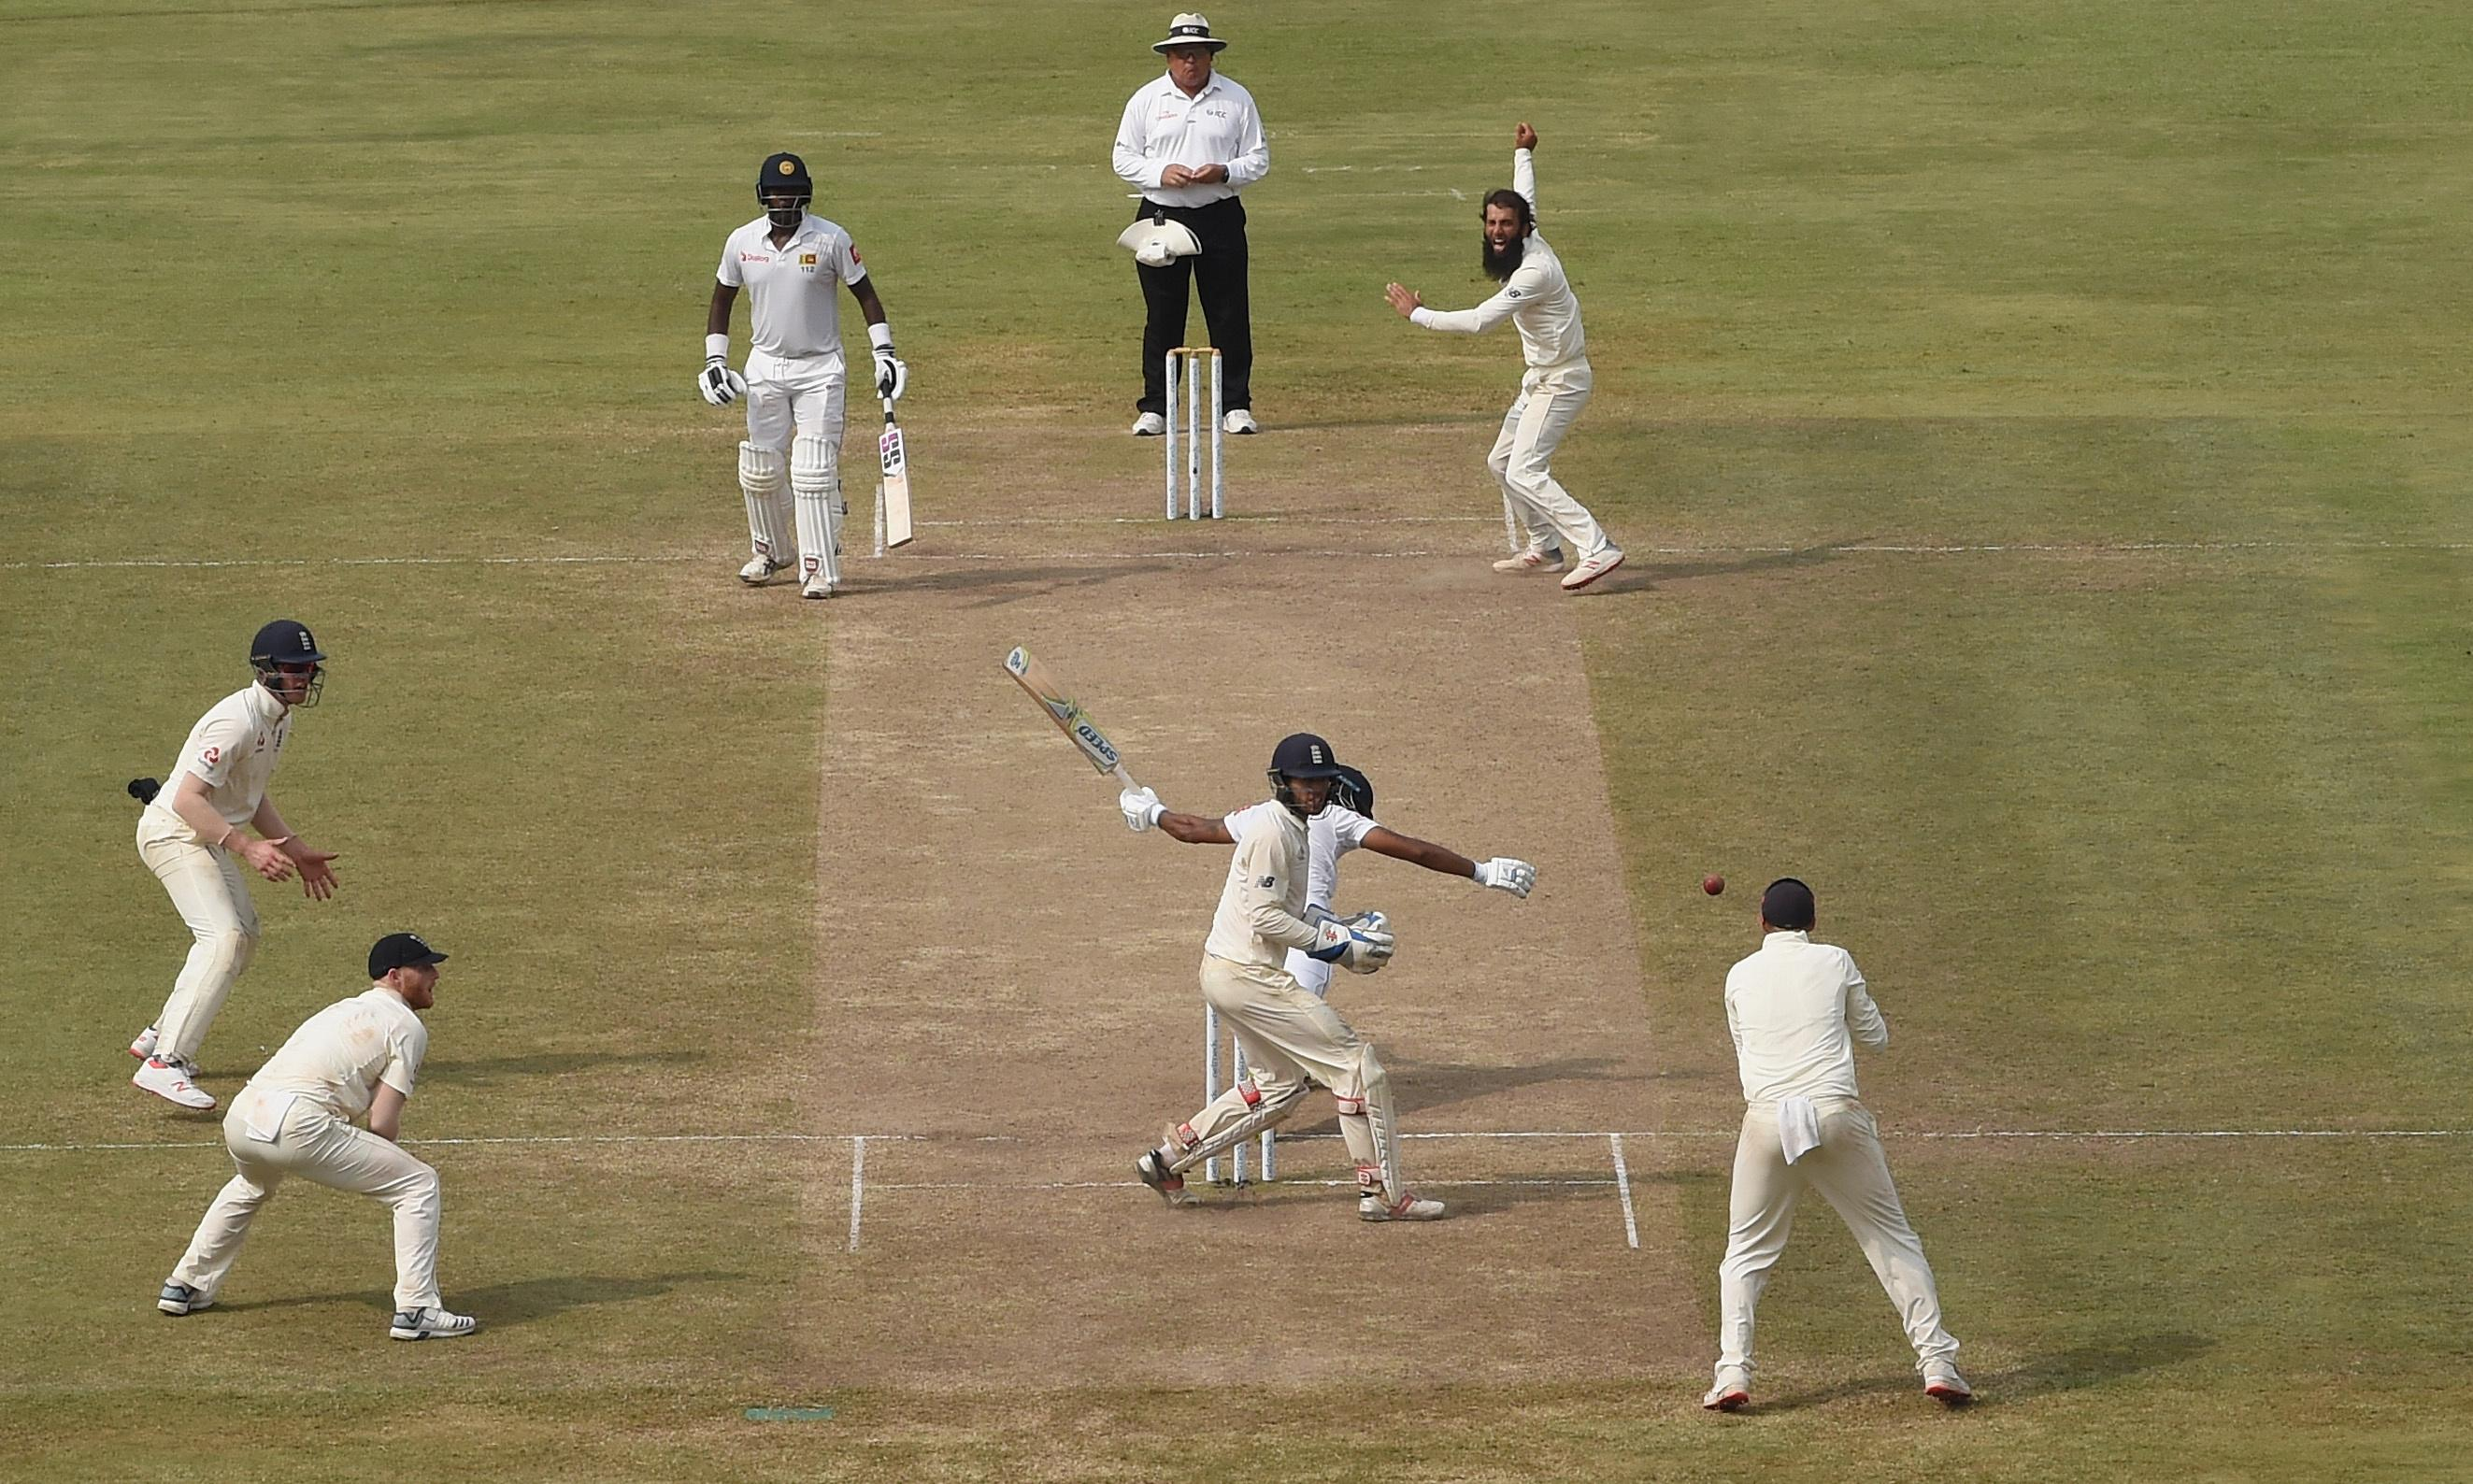 England spin their way to within three wickets of series win in Sri Lanka